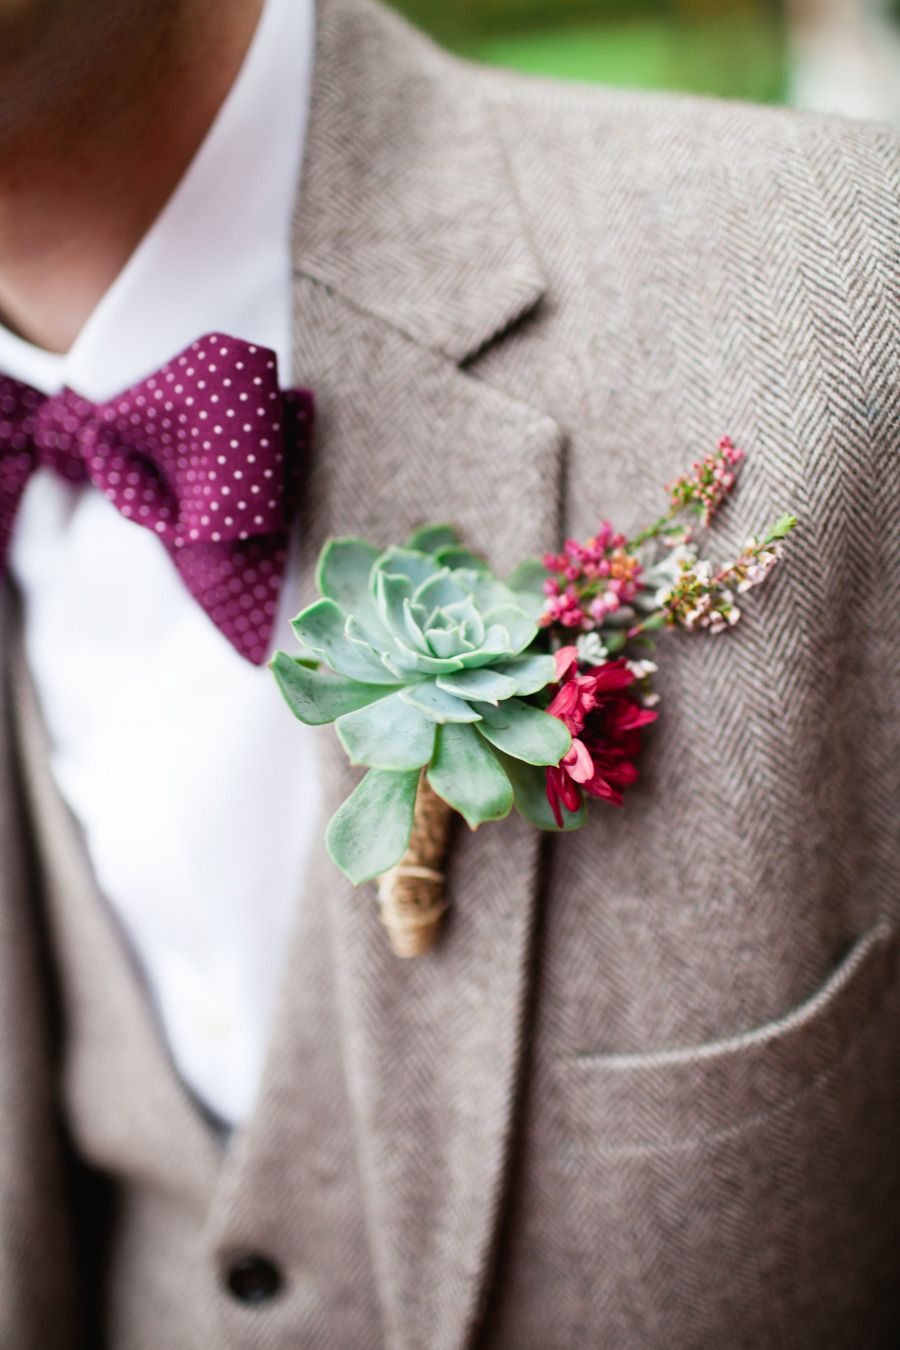 Succulent boutonniere and polka dot bow-tie. Photography- lovely colours for a Fall wedding. Corina V. Photography - corinavphotography.com/